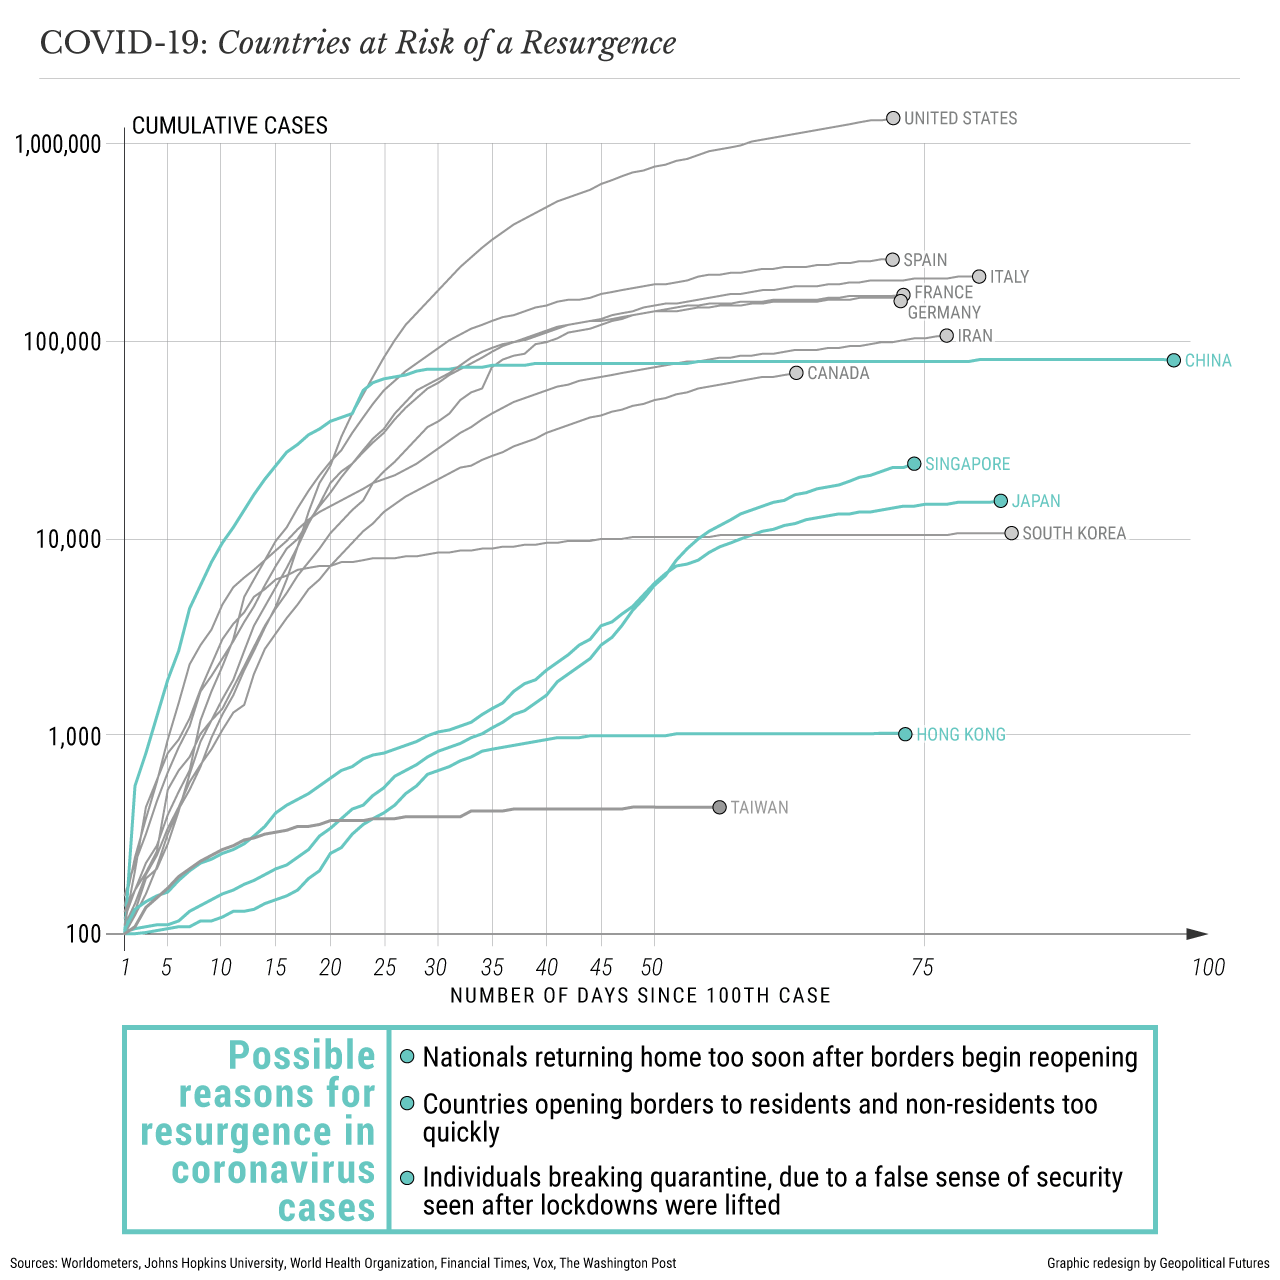 COVID-19: Countries at Risk of a Resurgence